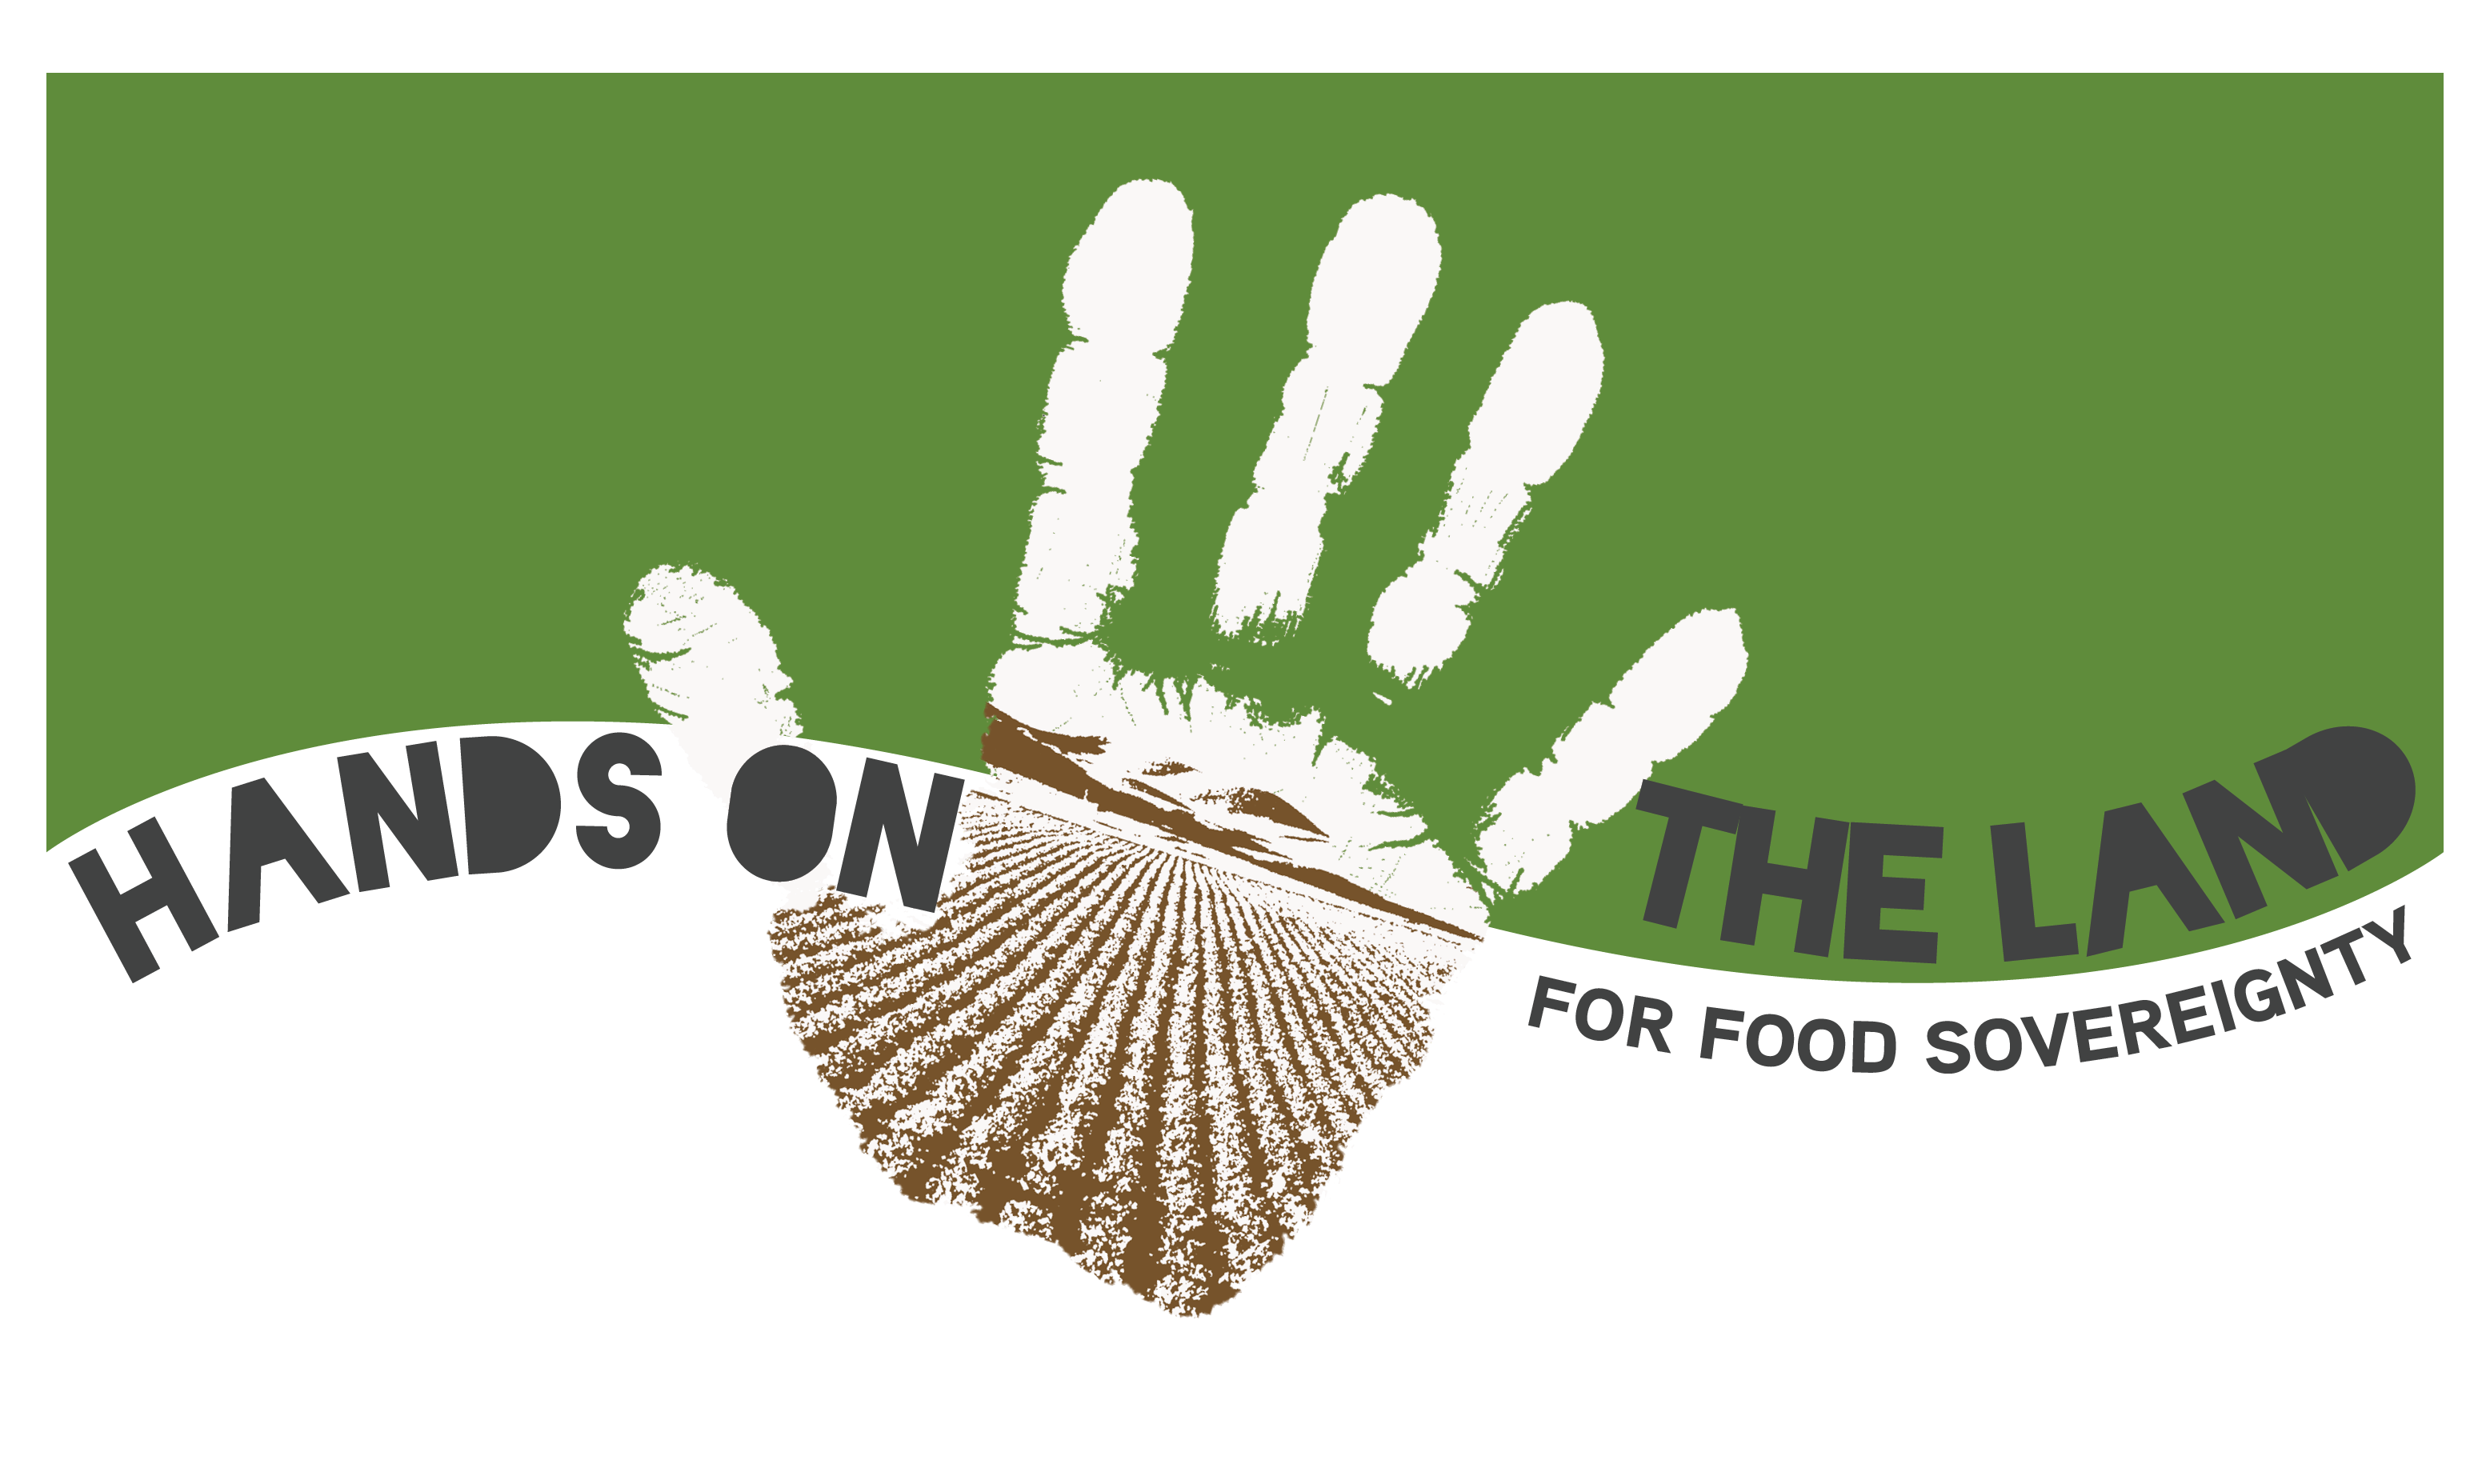 Kampagne HANDS ON THE LAND FOR FOOD SOVEREIGNTY